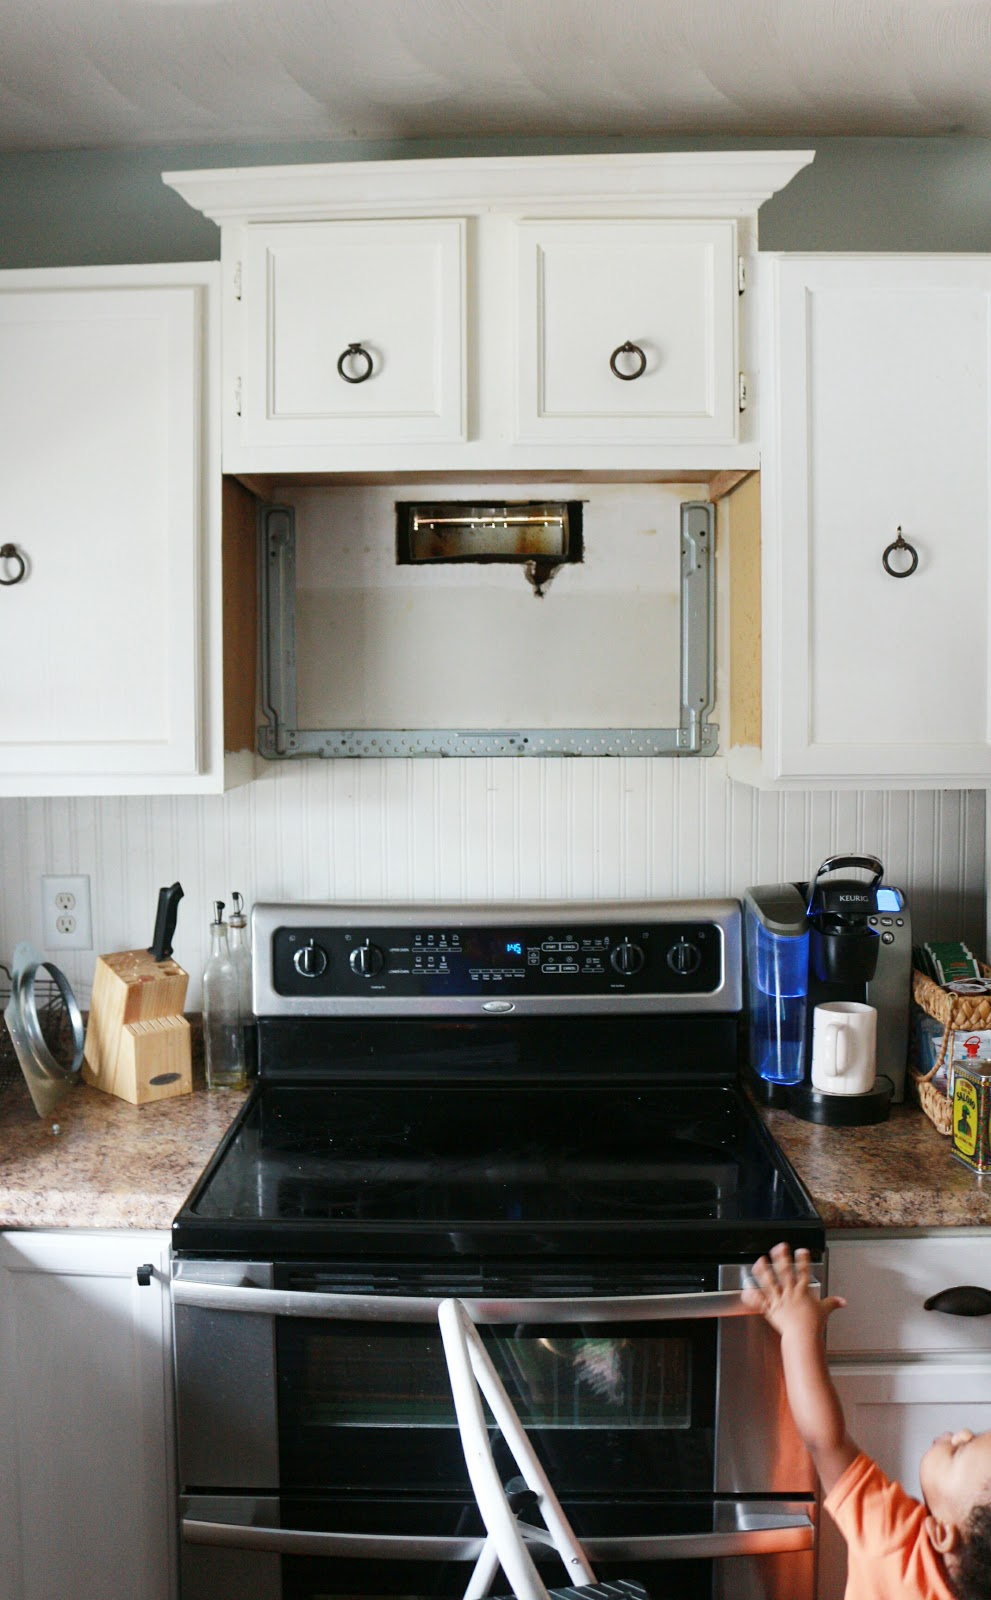 Over The Range Hood Installation